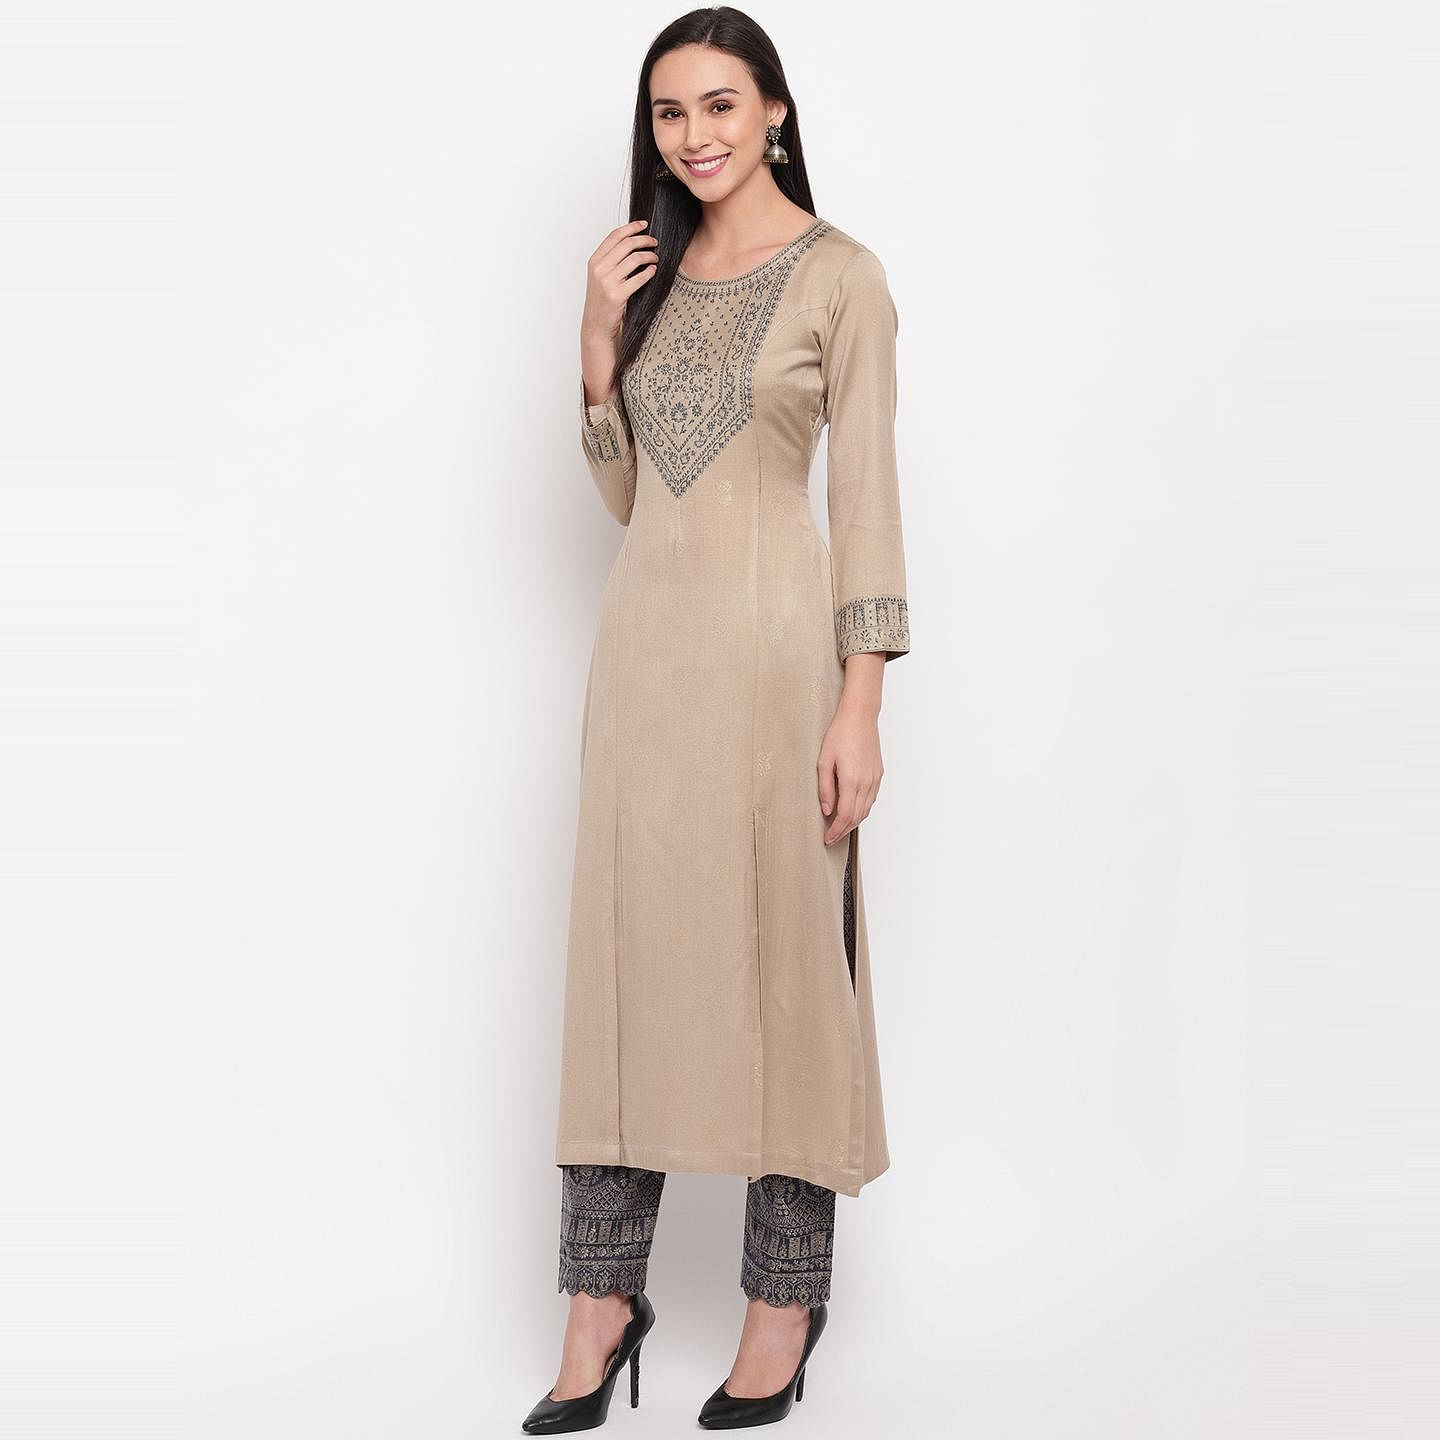 HK Colors Of Fashion - Beige Colored Liva Acrylic Wool Blend Dress Material